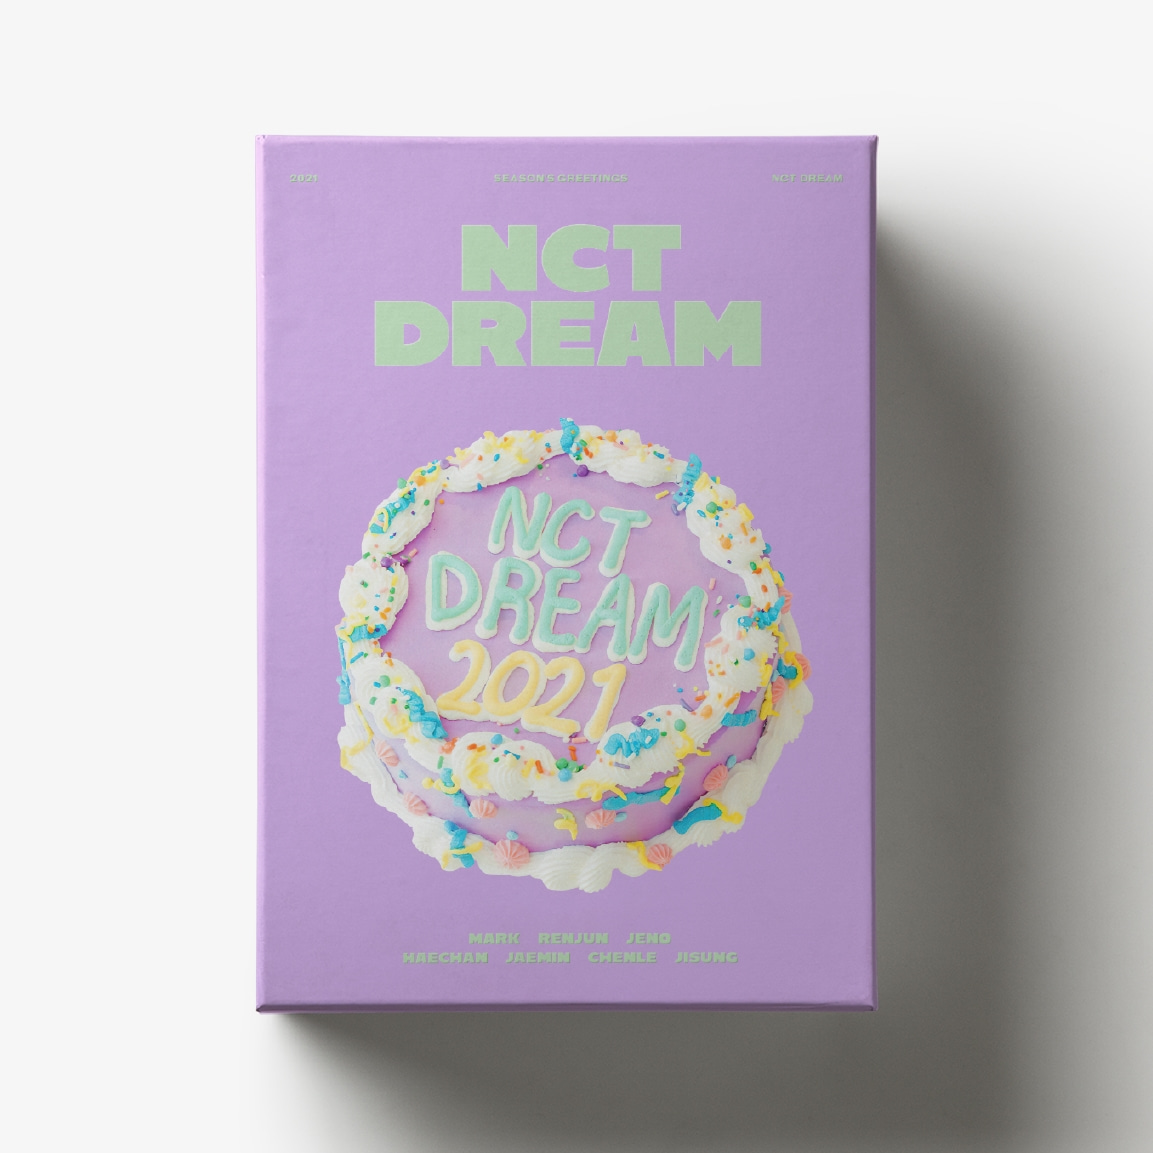 [PRE-ORDER] NCT DREAM - 2021 SEASON'S GREETINGS케이팝스토어(kpop store)